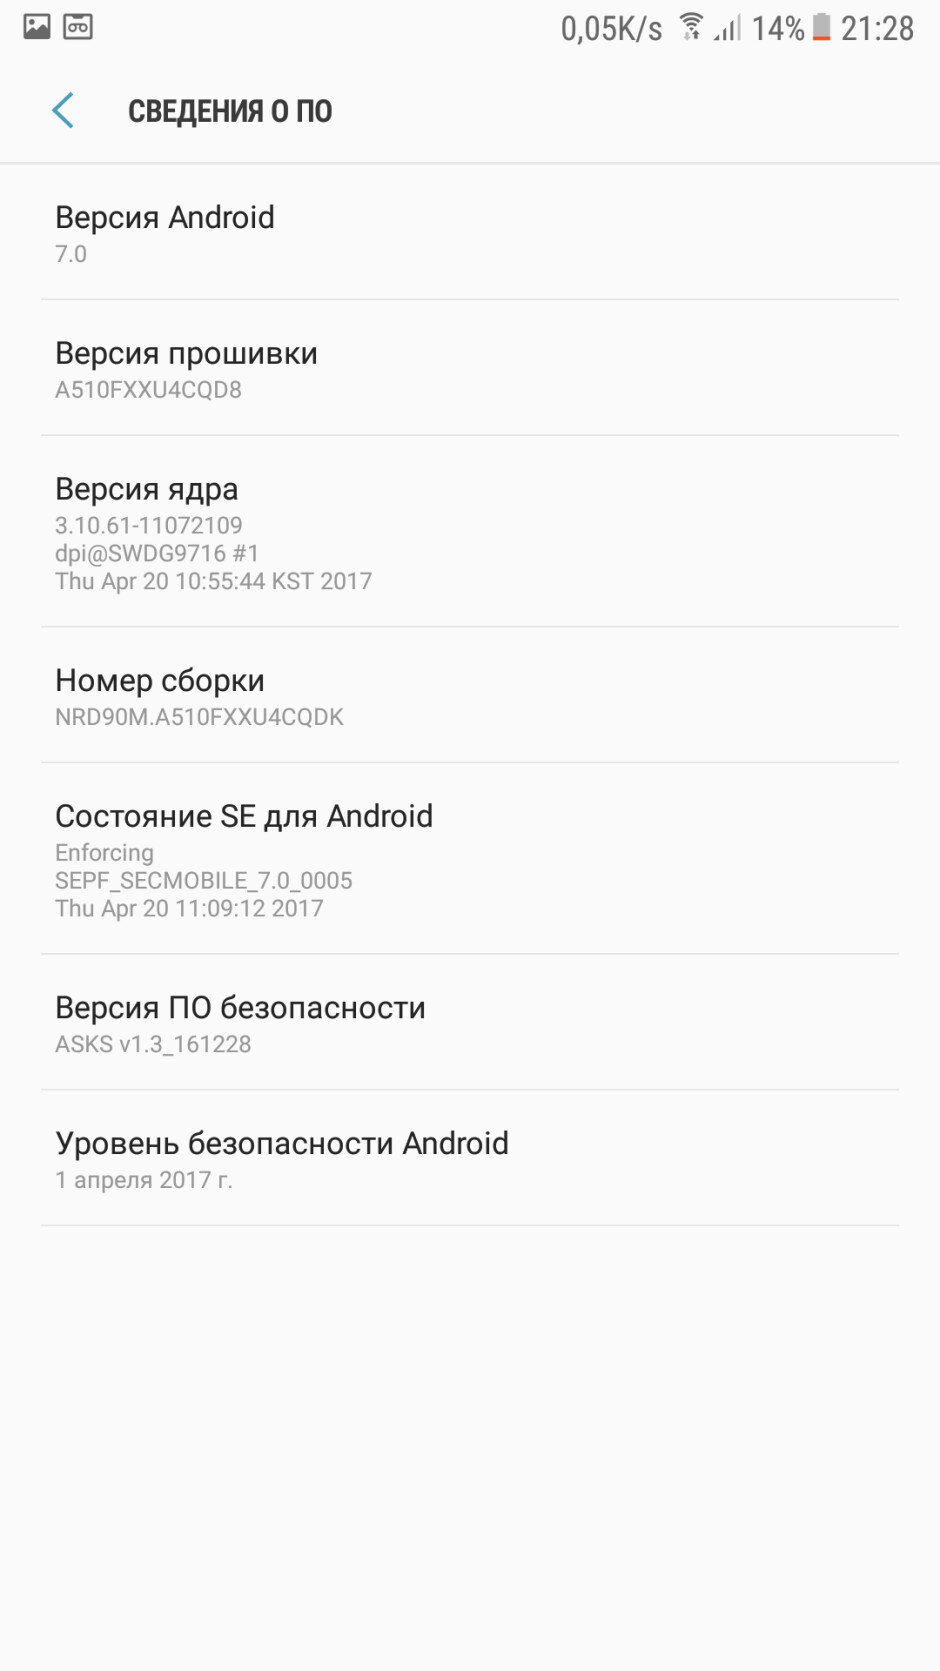 Samsung Galaxy A5 (2016) starts getting Android 7.0 Nougat update